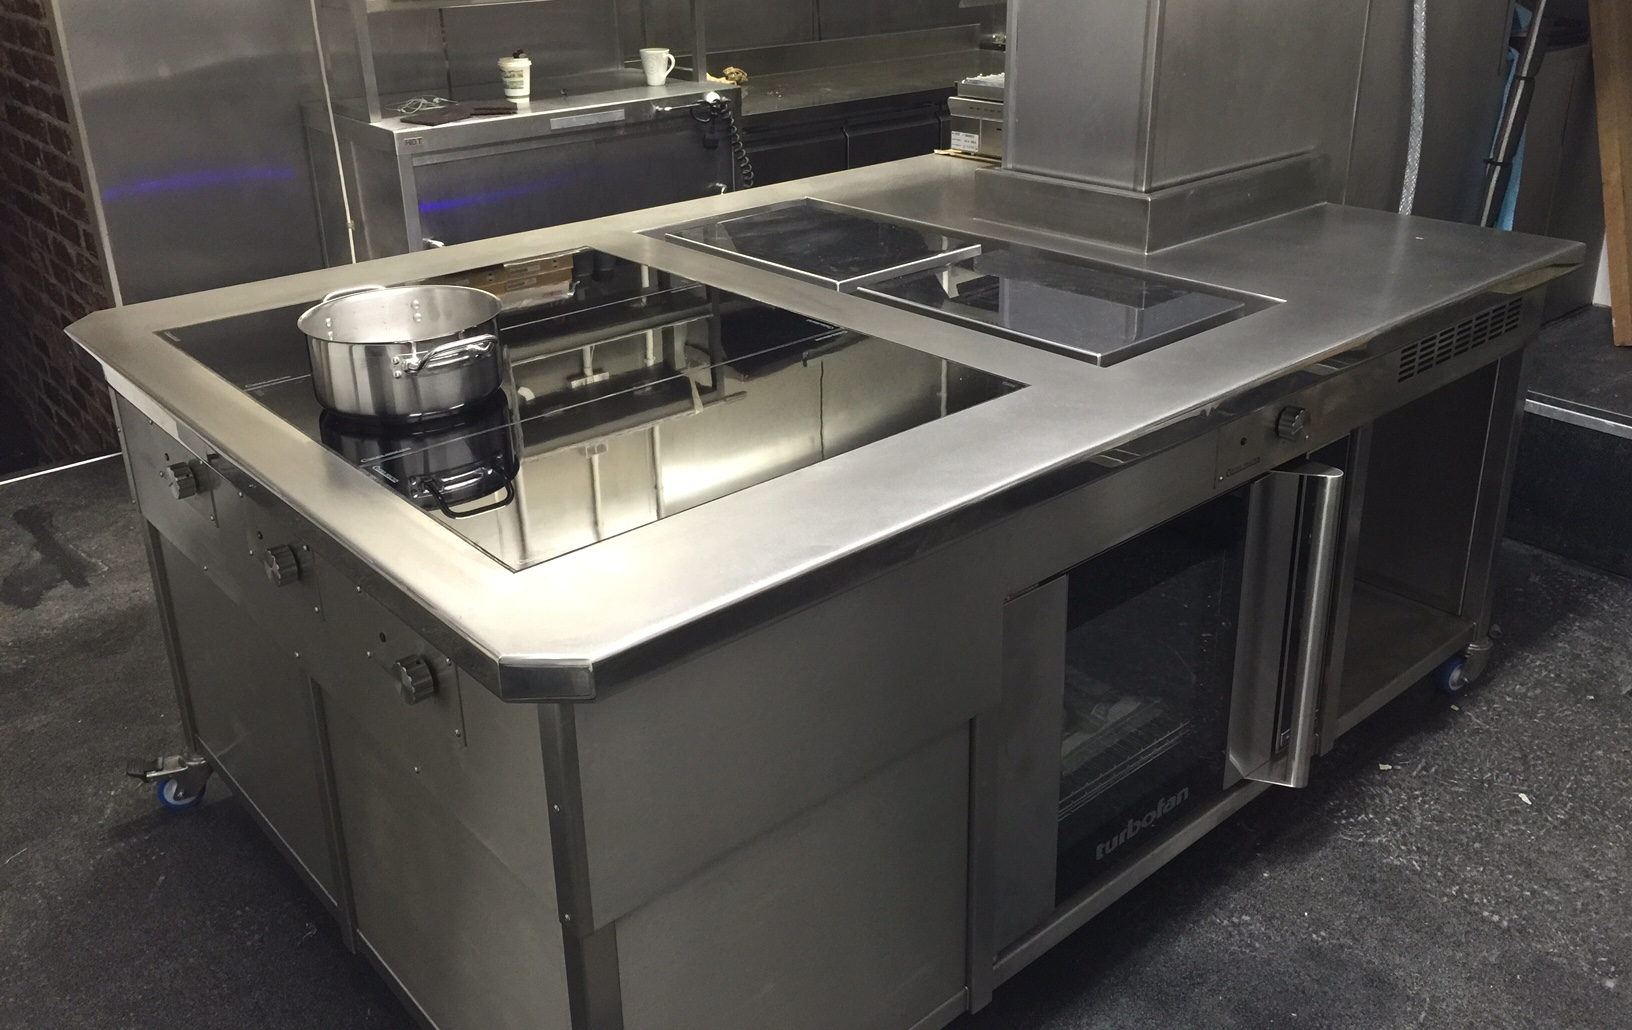 Bespoke induction stove